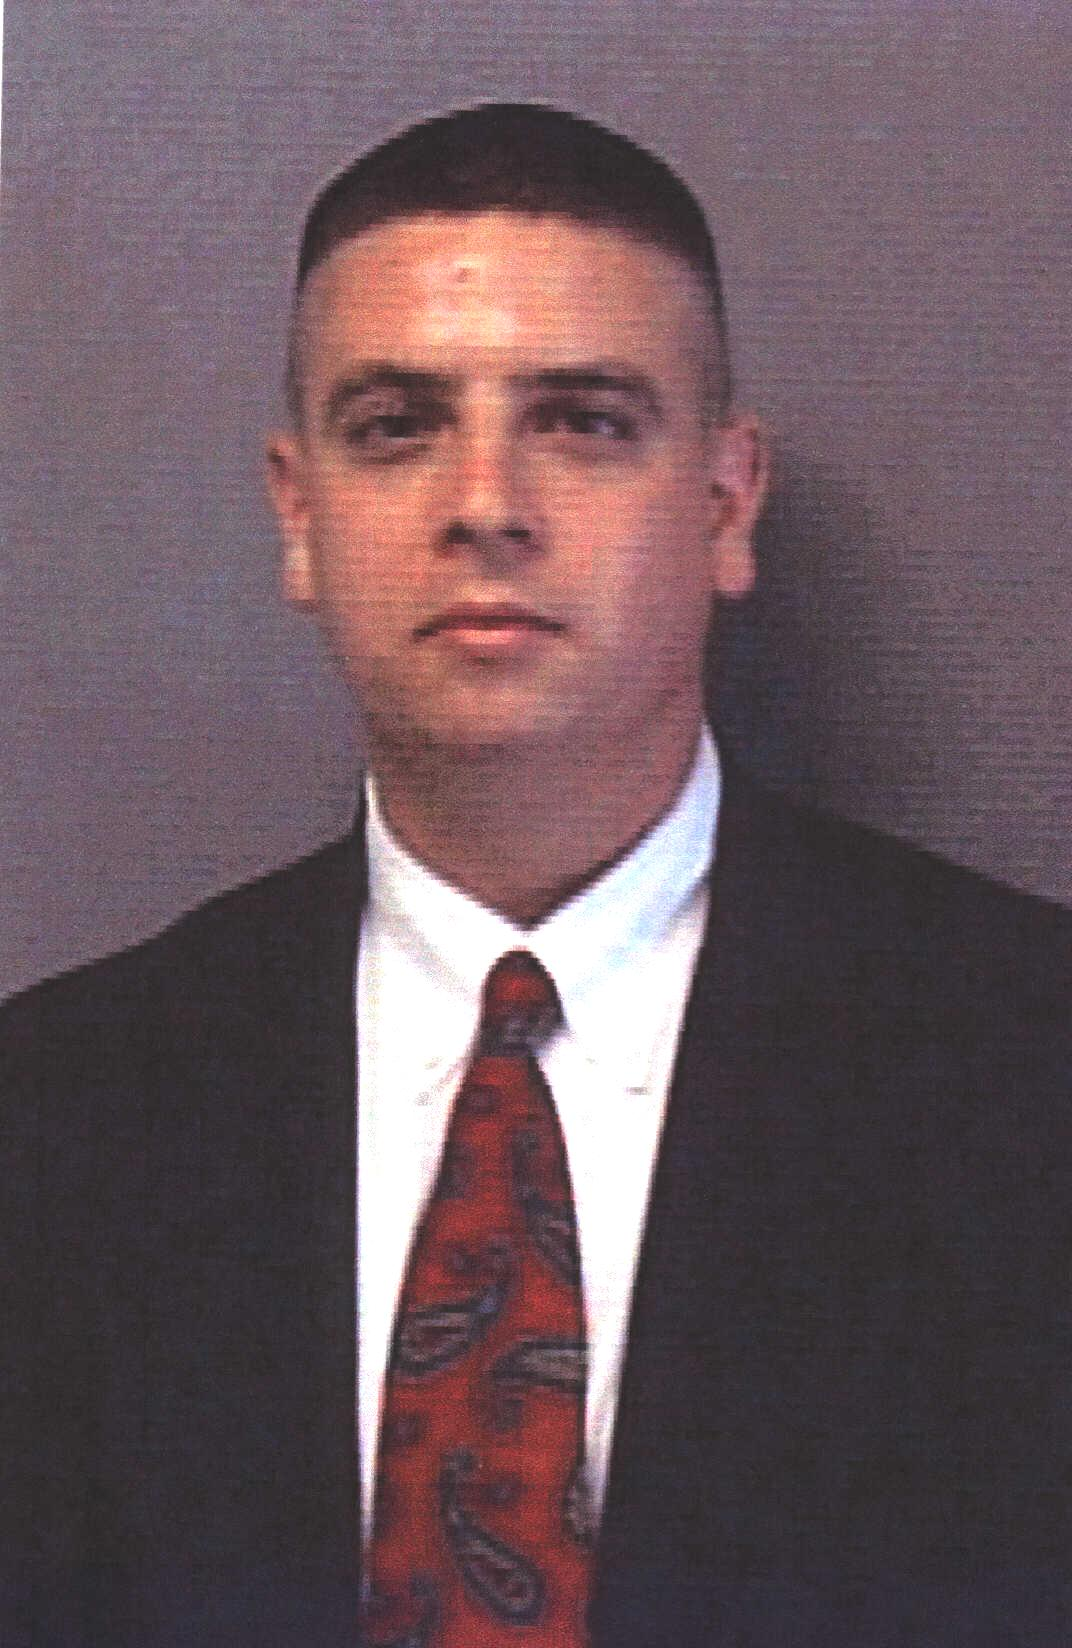 Deputy Sheriff Jason Charles Schwenz | Queen Anne's County Sheriff's Office, Maryland